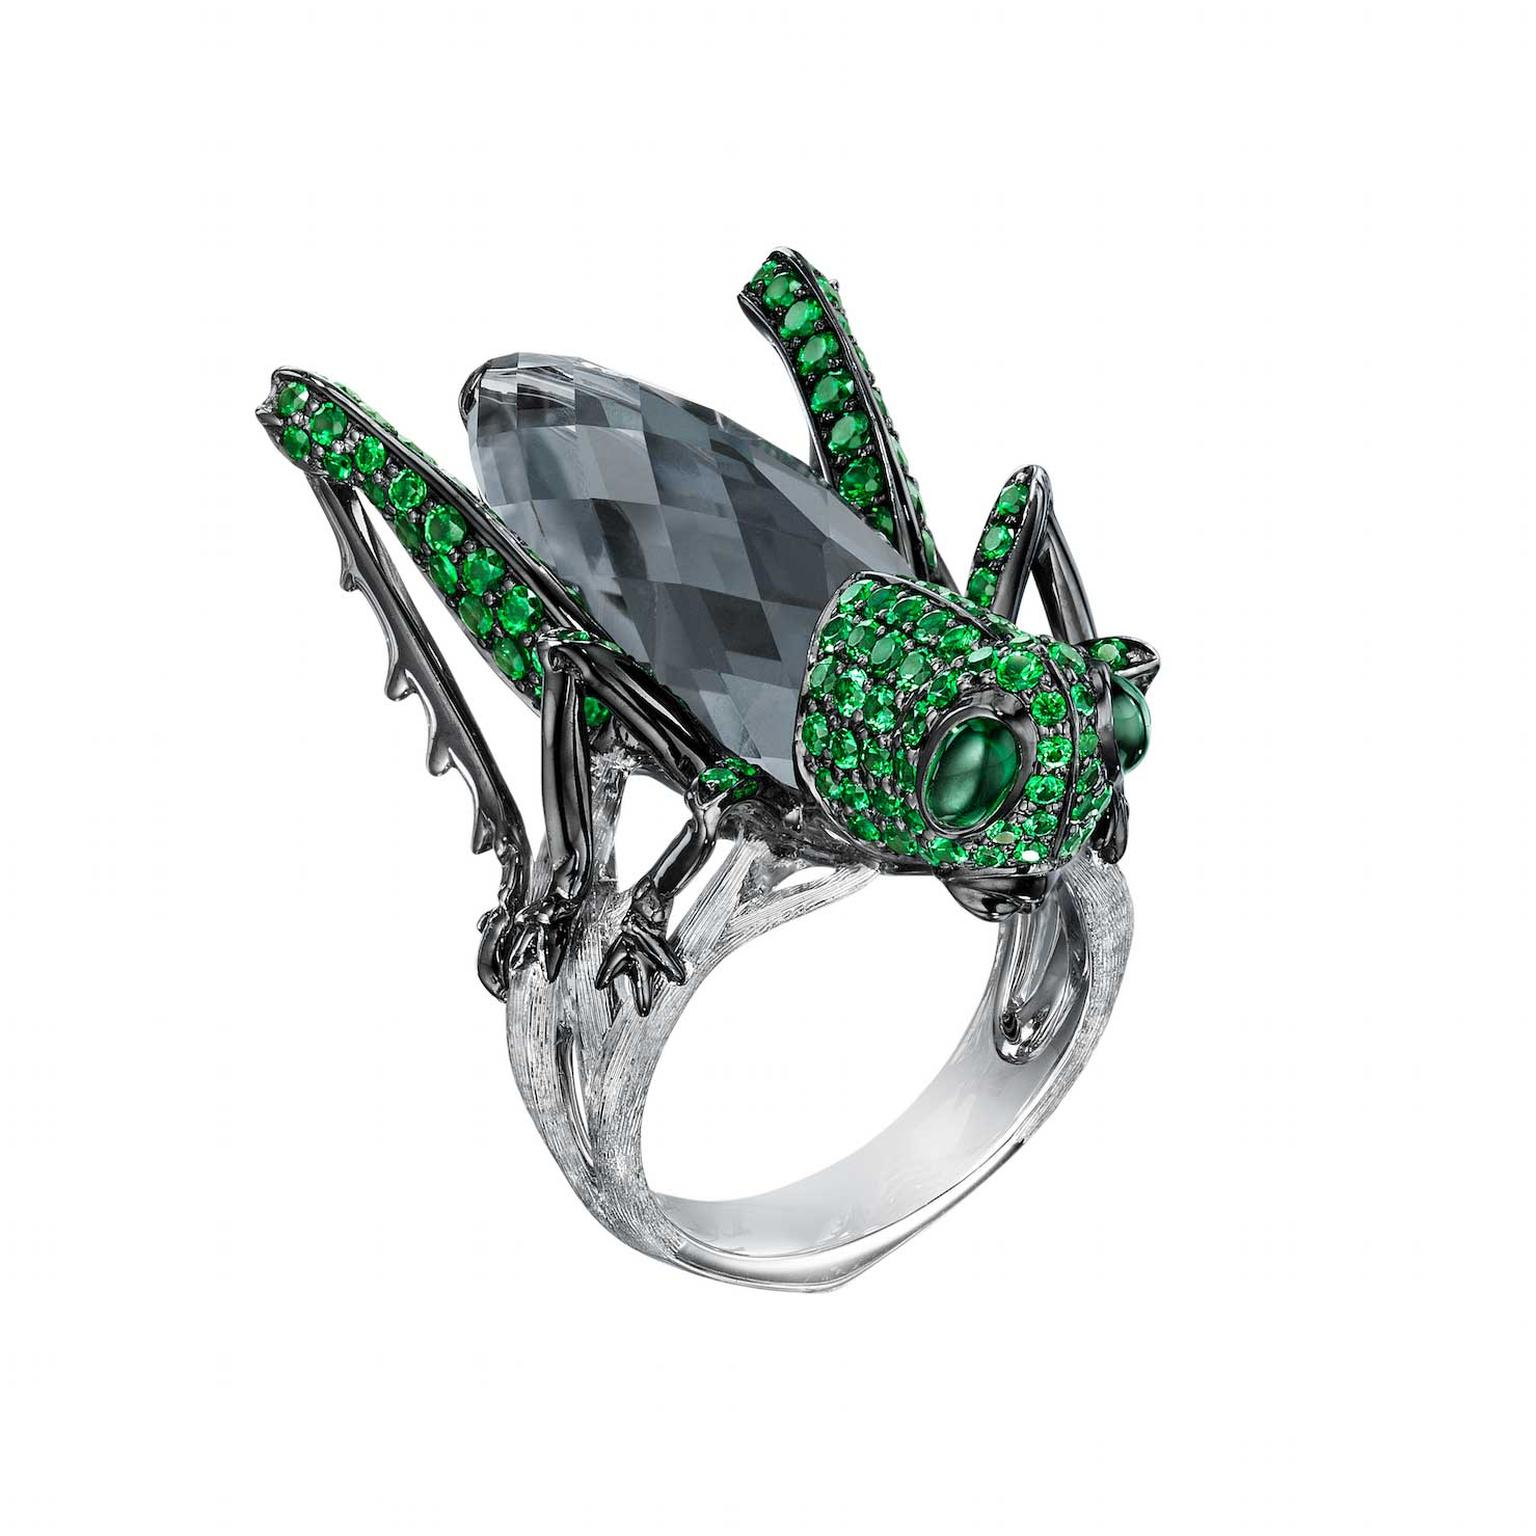 Stephen Webster Fly by Night Grasshopper ring